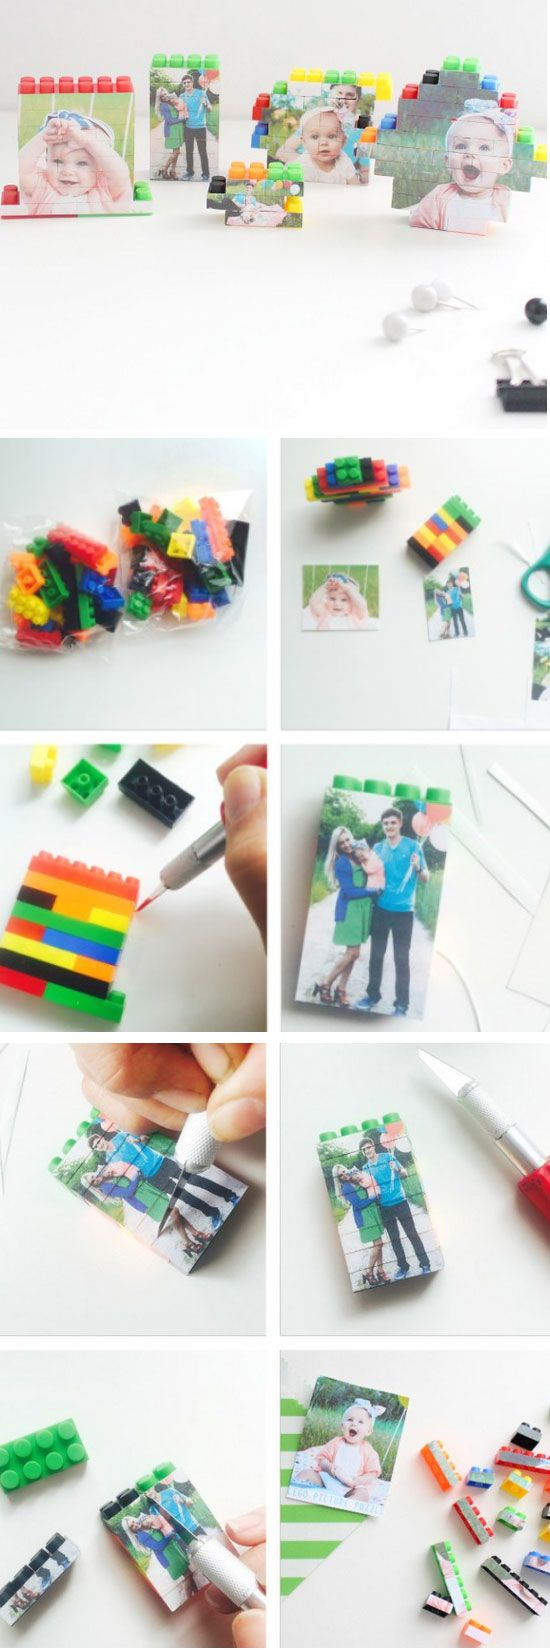 Diy Lego Picture Puzzles Easy Fathers Day Crafts For Kids To Make